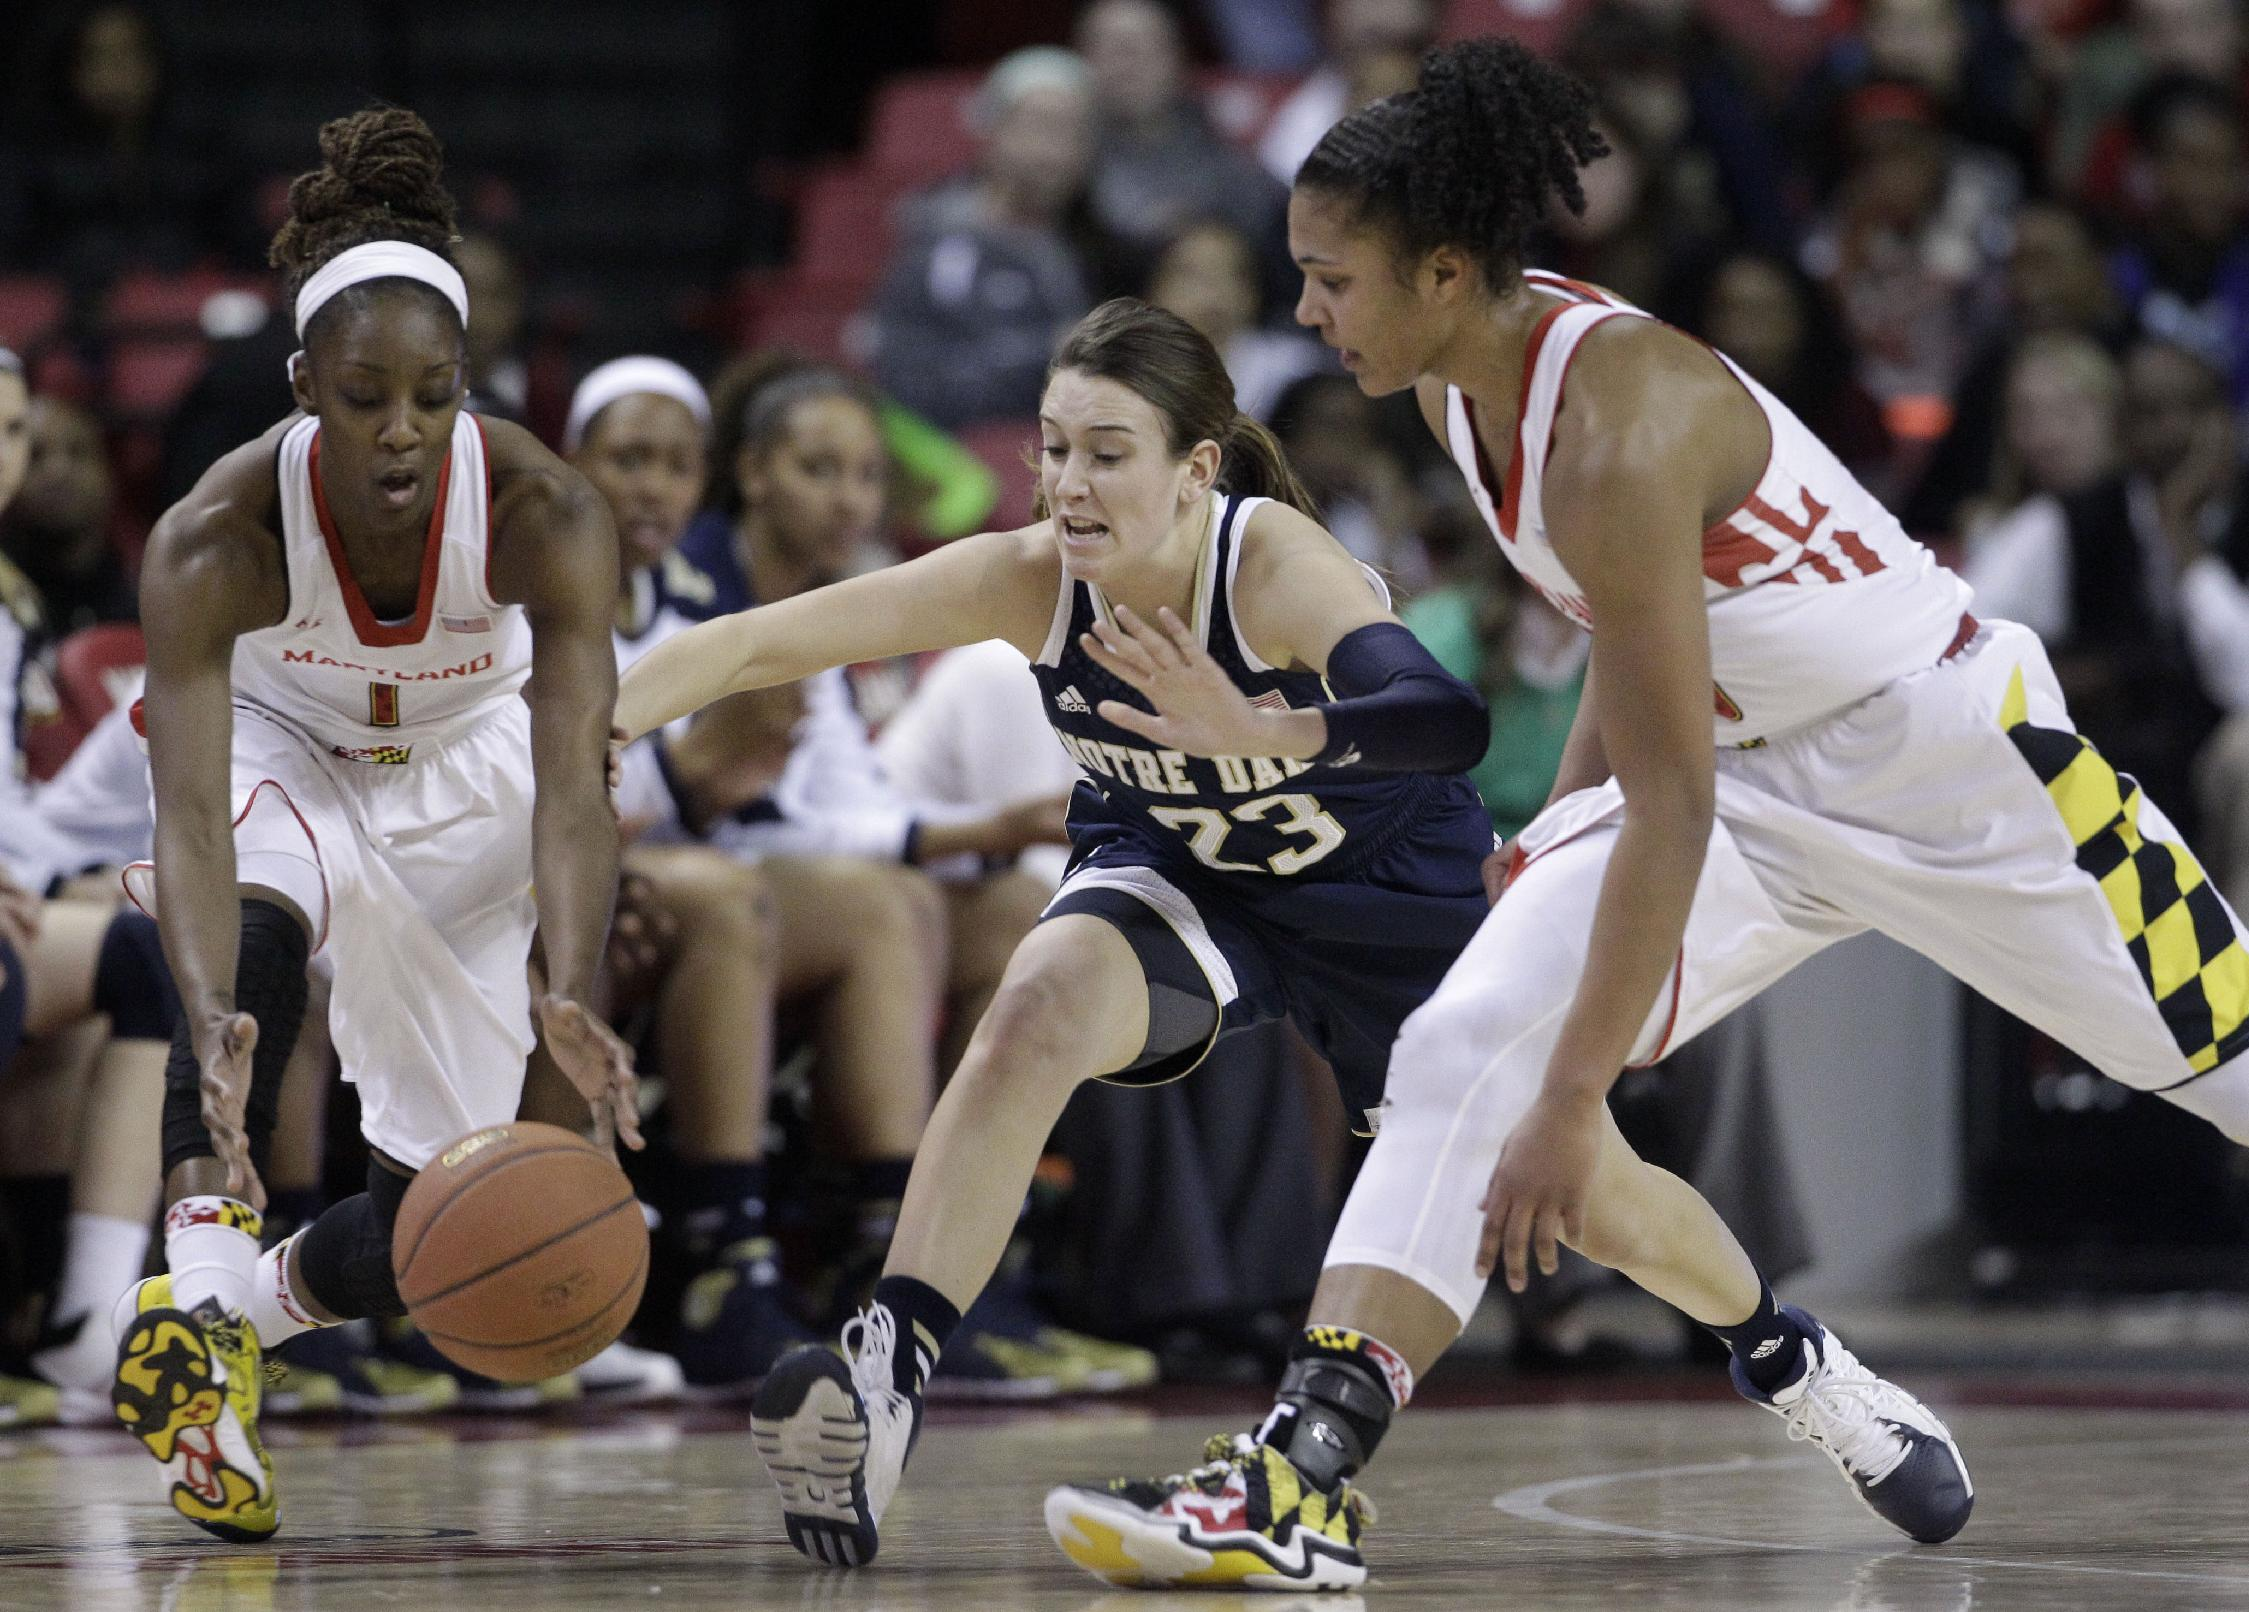 Maryland guard Laurin Mincy, left, Notre Dame guard Michaela Mabrey, center, and Maryland forward Alyssa Thomas chase after a loose ball in the first half of an NCAA college basketball game in College Park, Md., Monday, Jan. 27, 2014